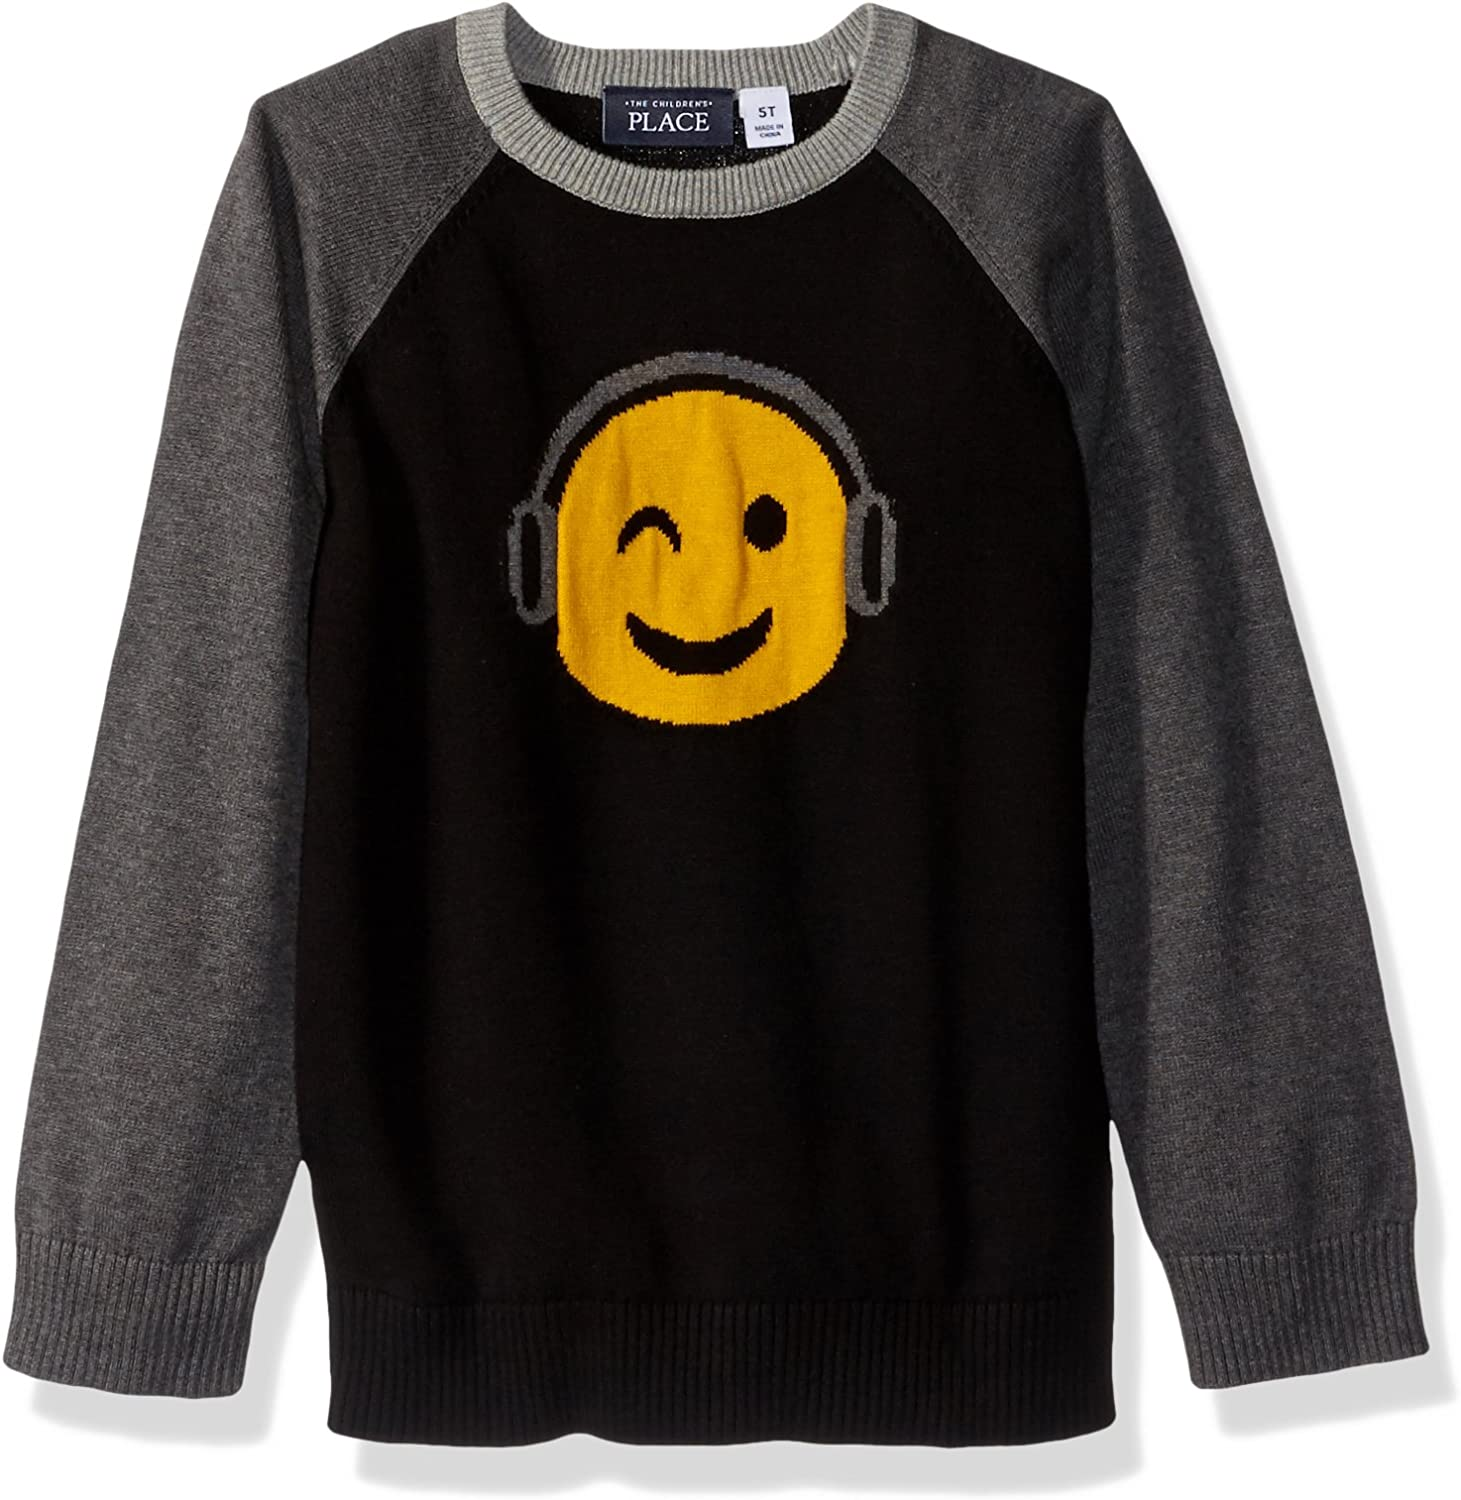 The Children's Place Baby Boys' Intarsia Sweater 2084663015, Black, 4T